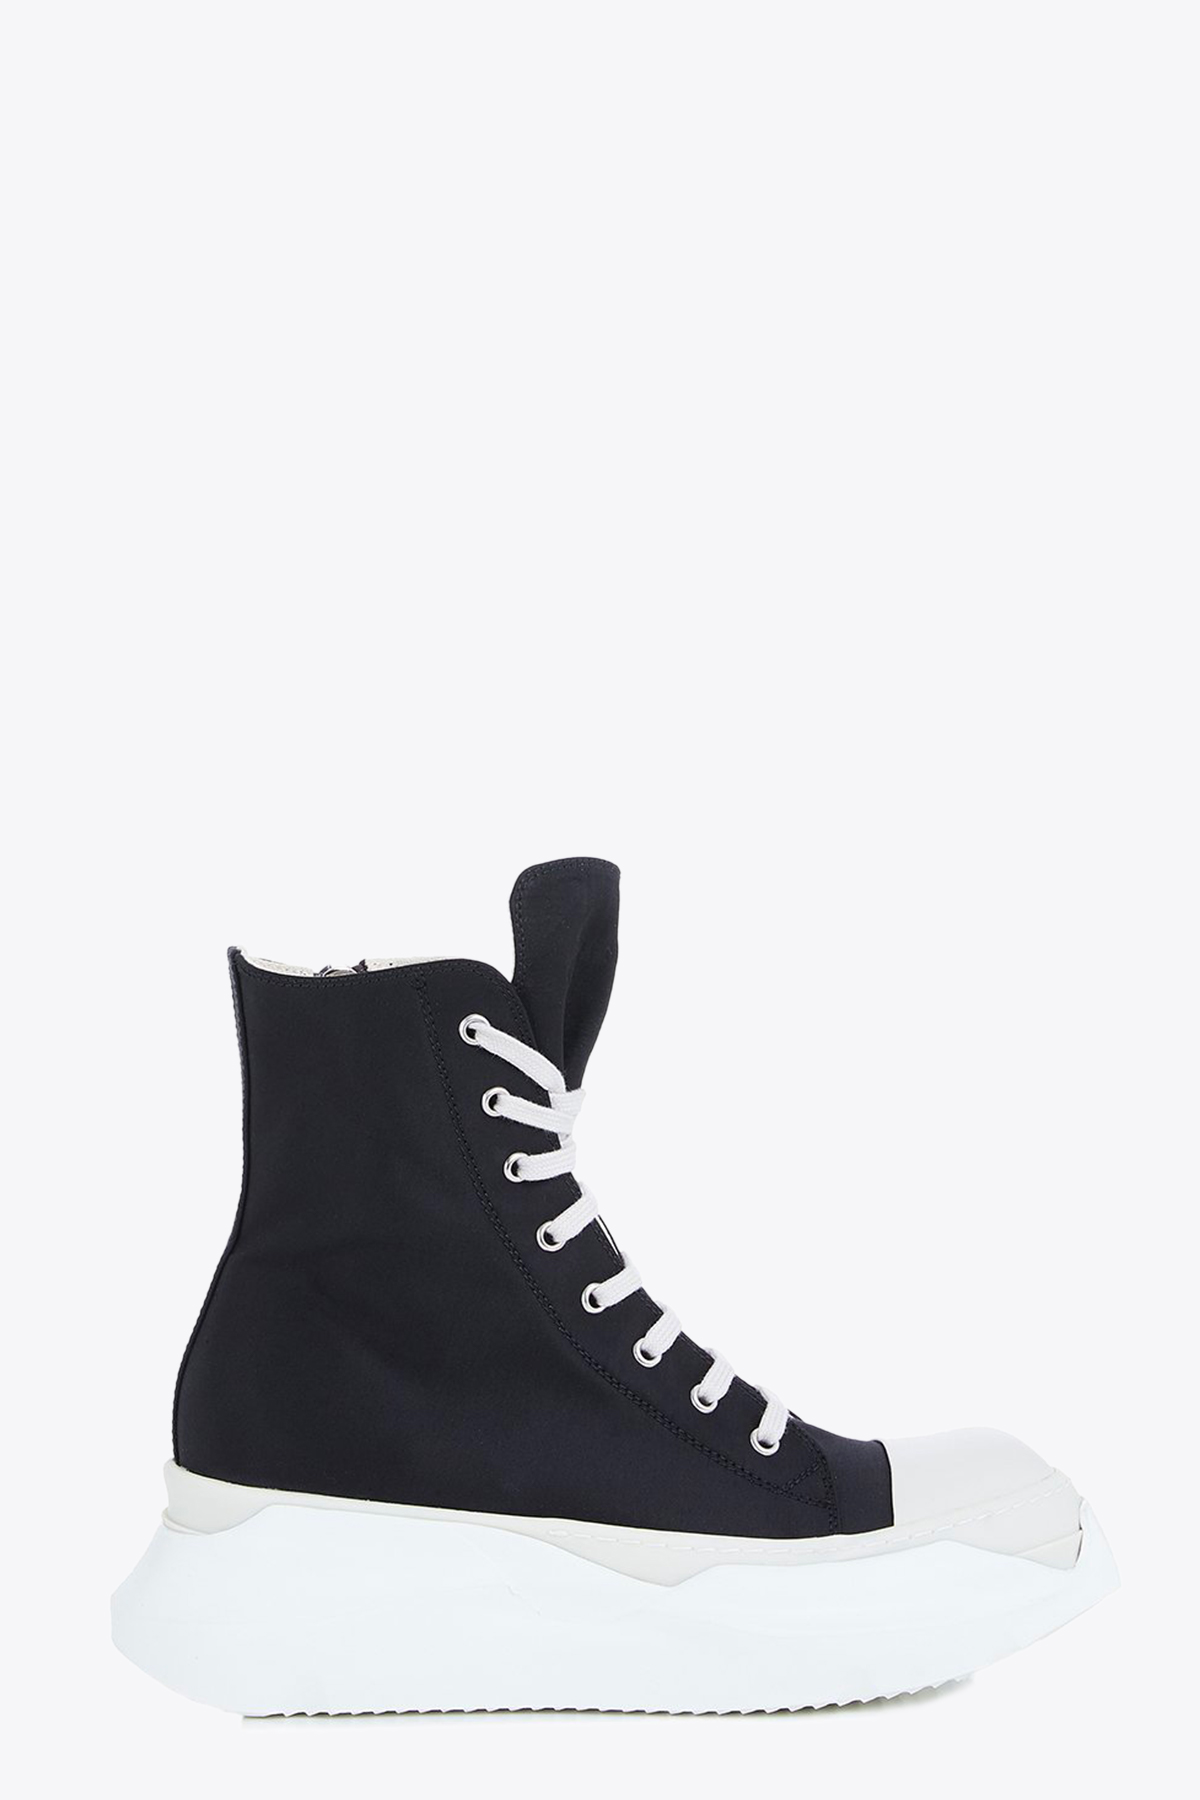 ABSTRACT SNEAKERS RICK OWENS-DRKSHDW | 10000039 | DS20F1840 CNP ABSTRACT SNEAKERS911